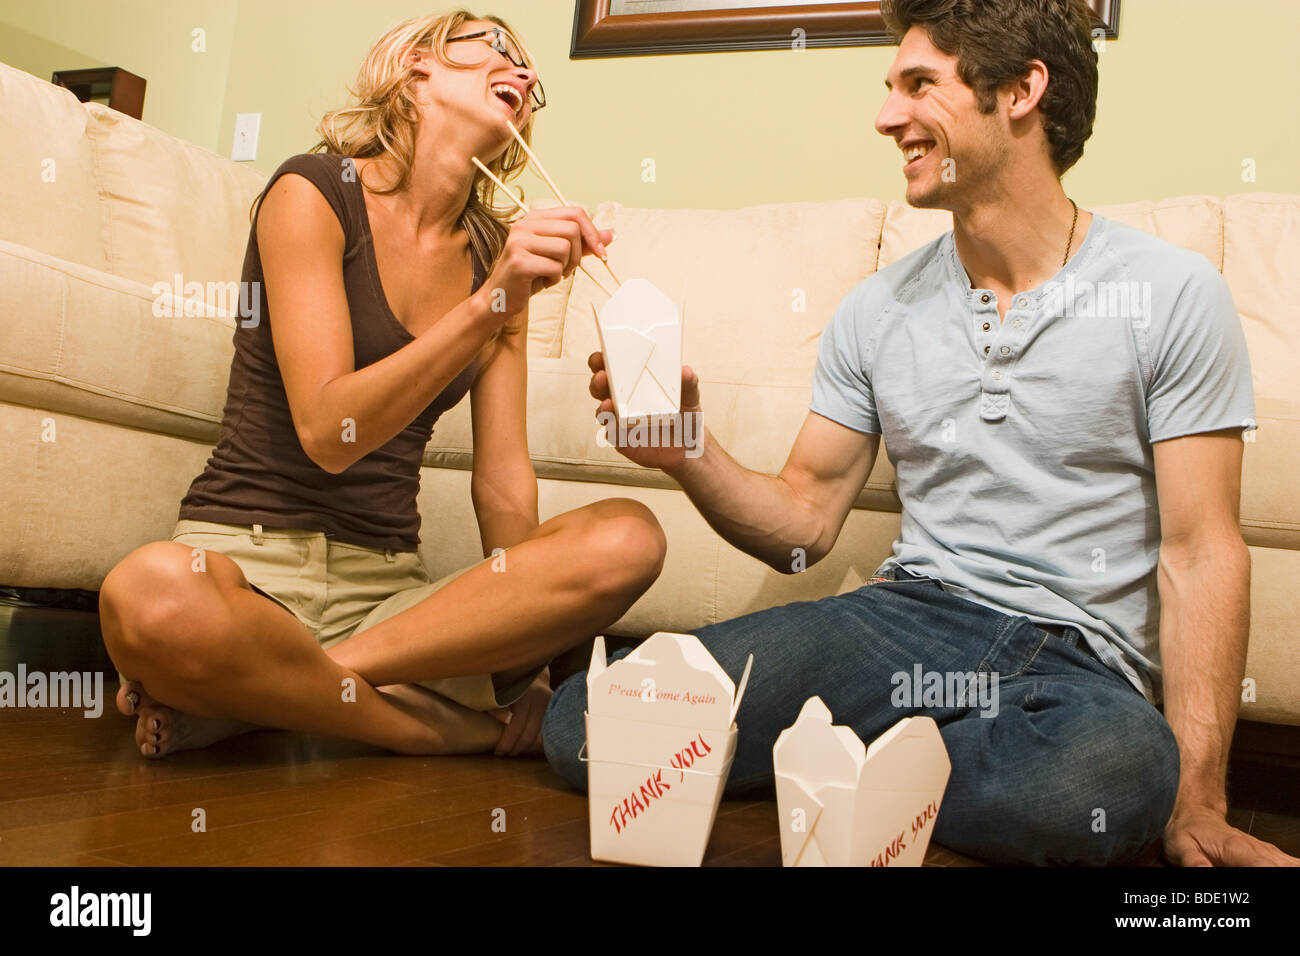 Beautiful young couple enjoying each others company - Stock Image